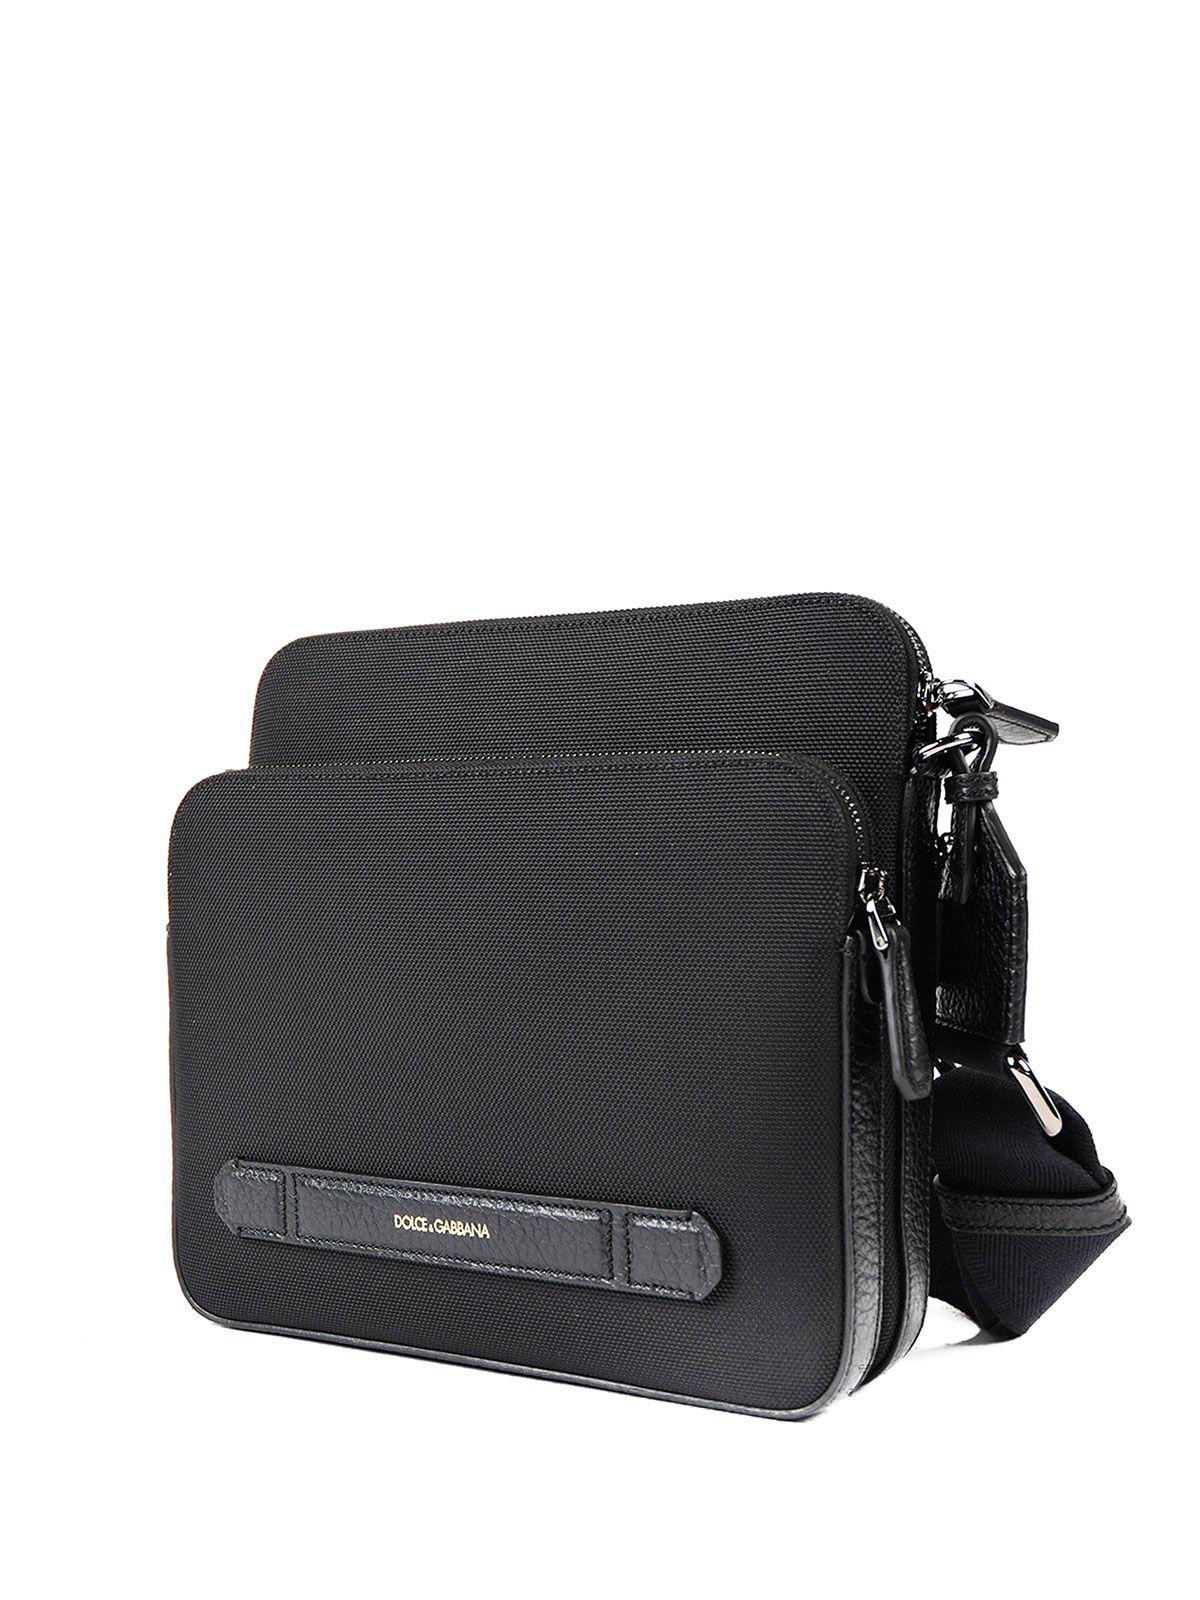 DOLCE   GABBANA  shoulder bags online - Cordura messenger bag 8fed605470965